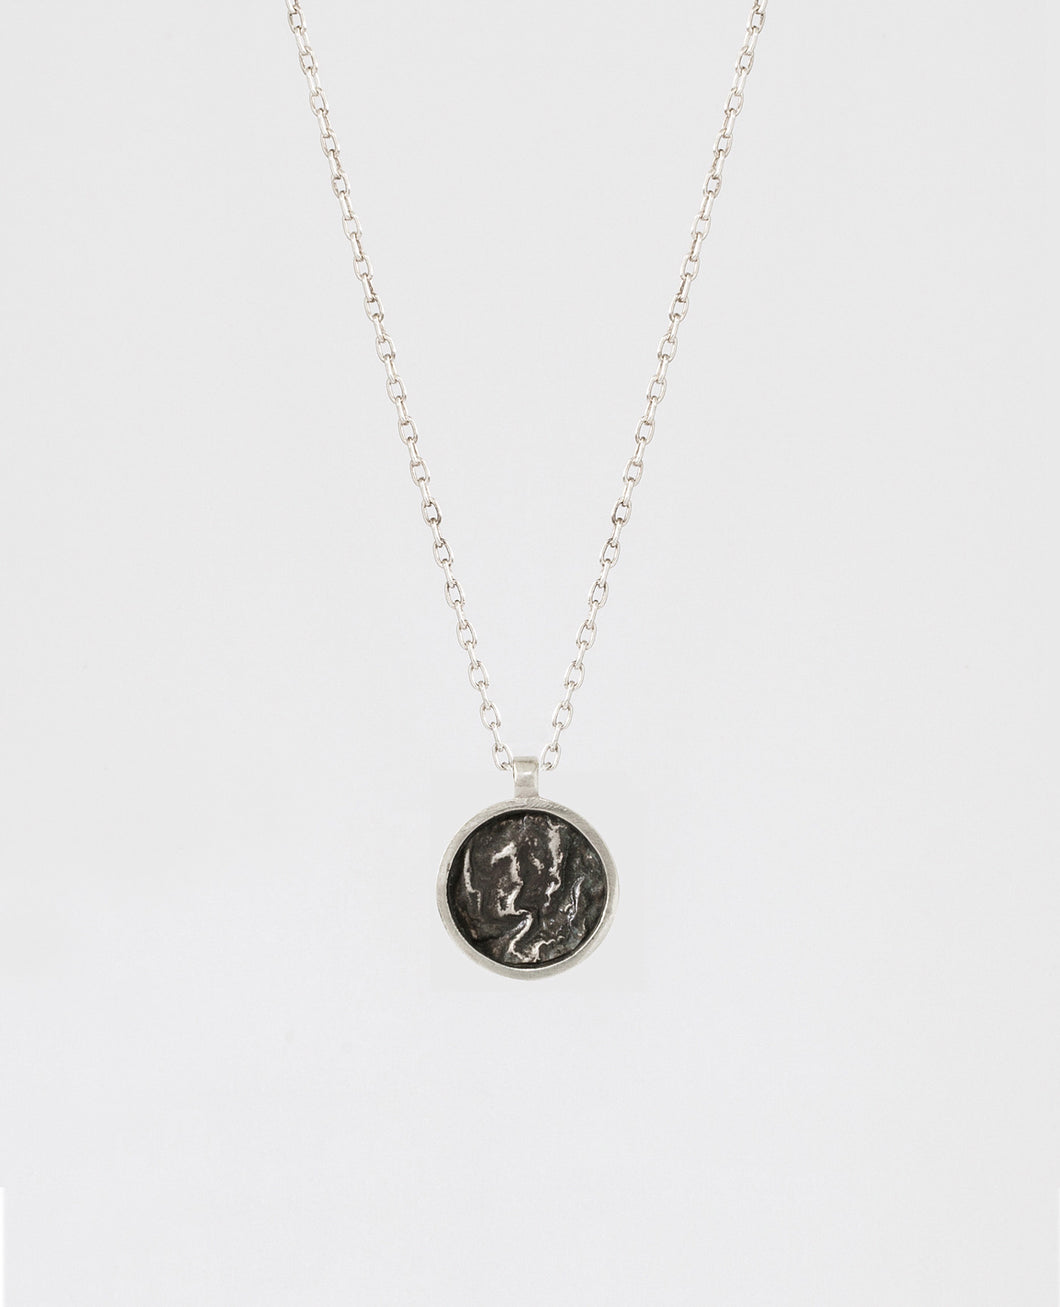 Mini Circular Topography Necklace